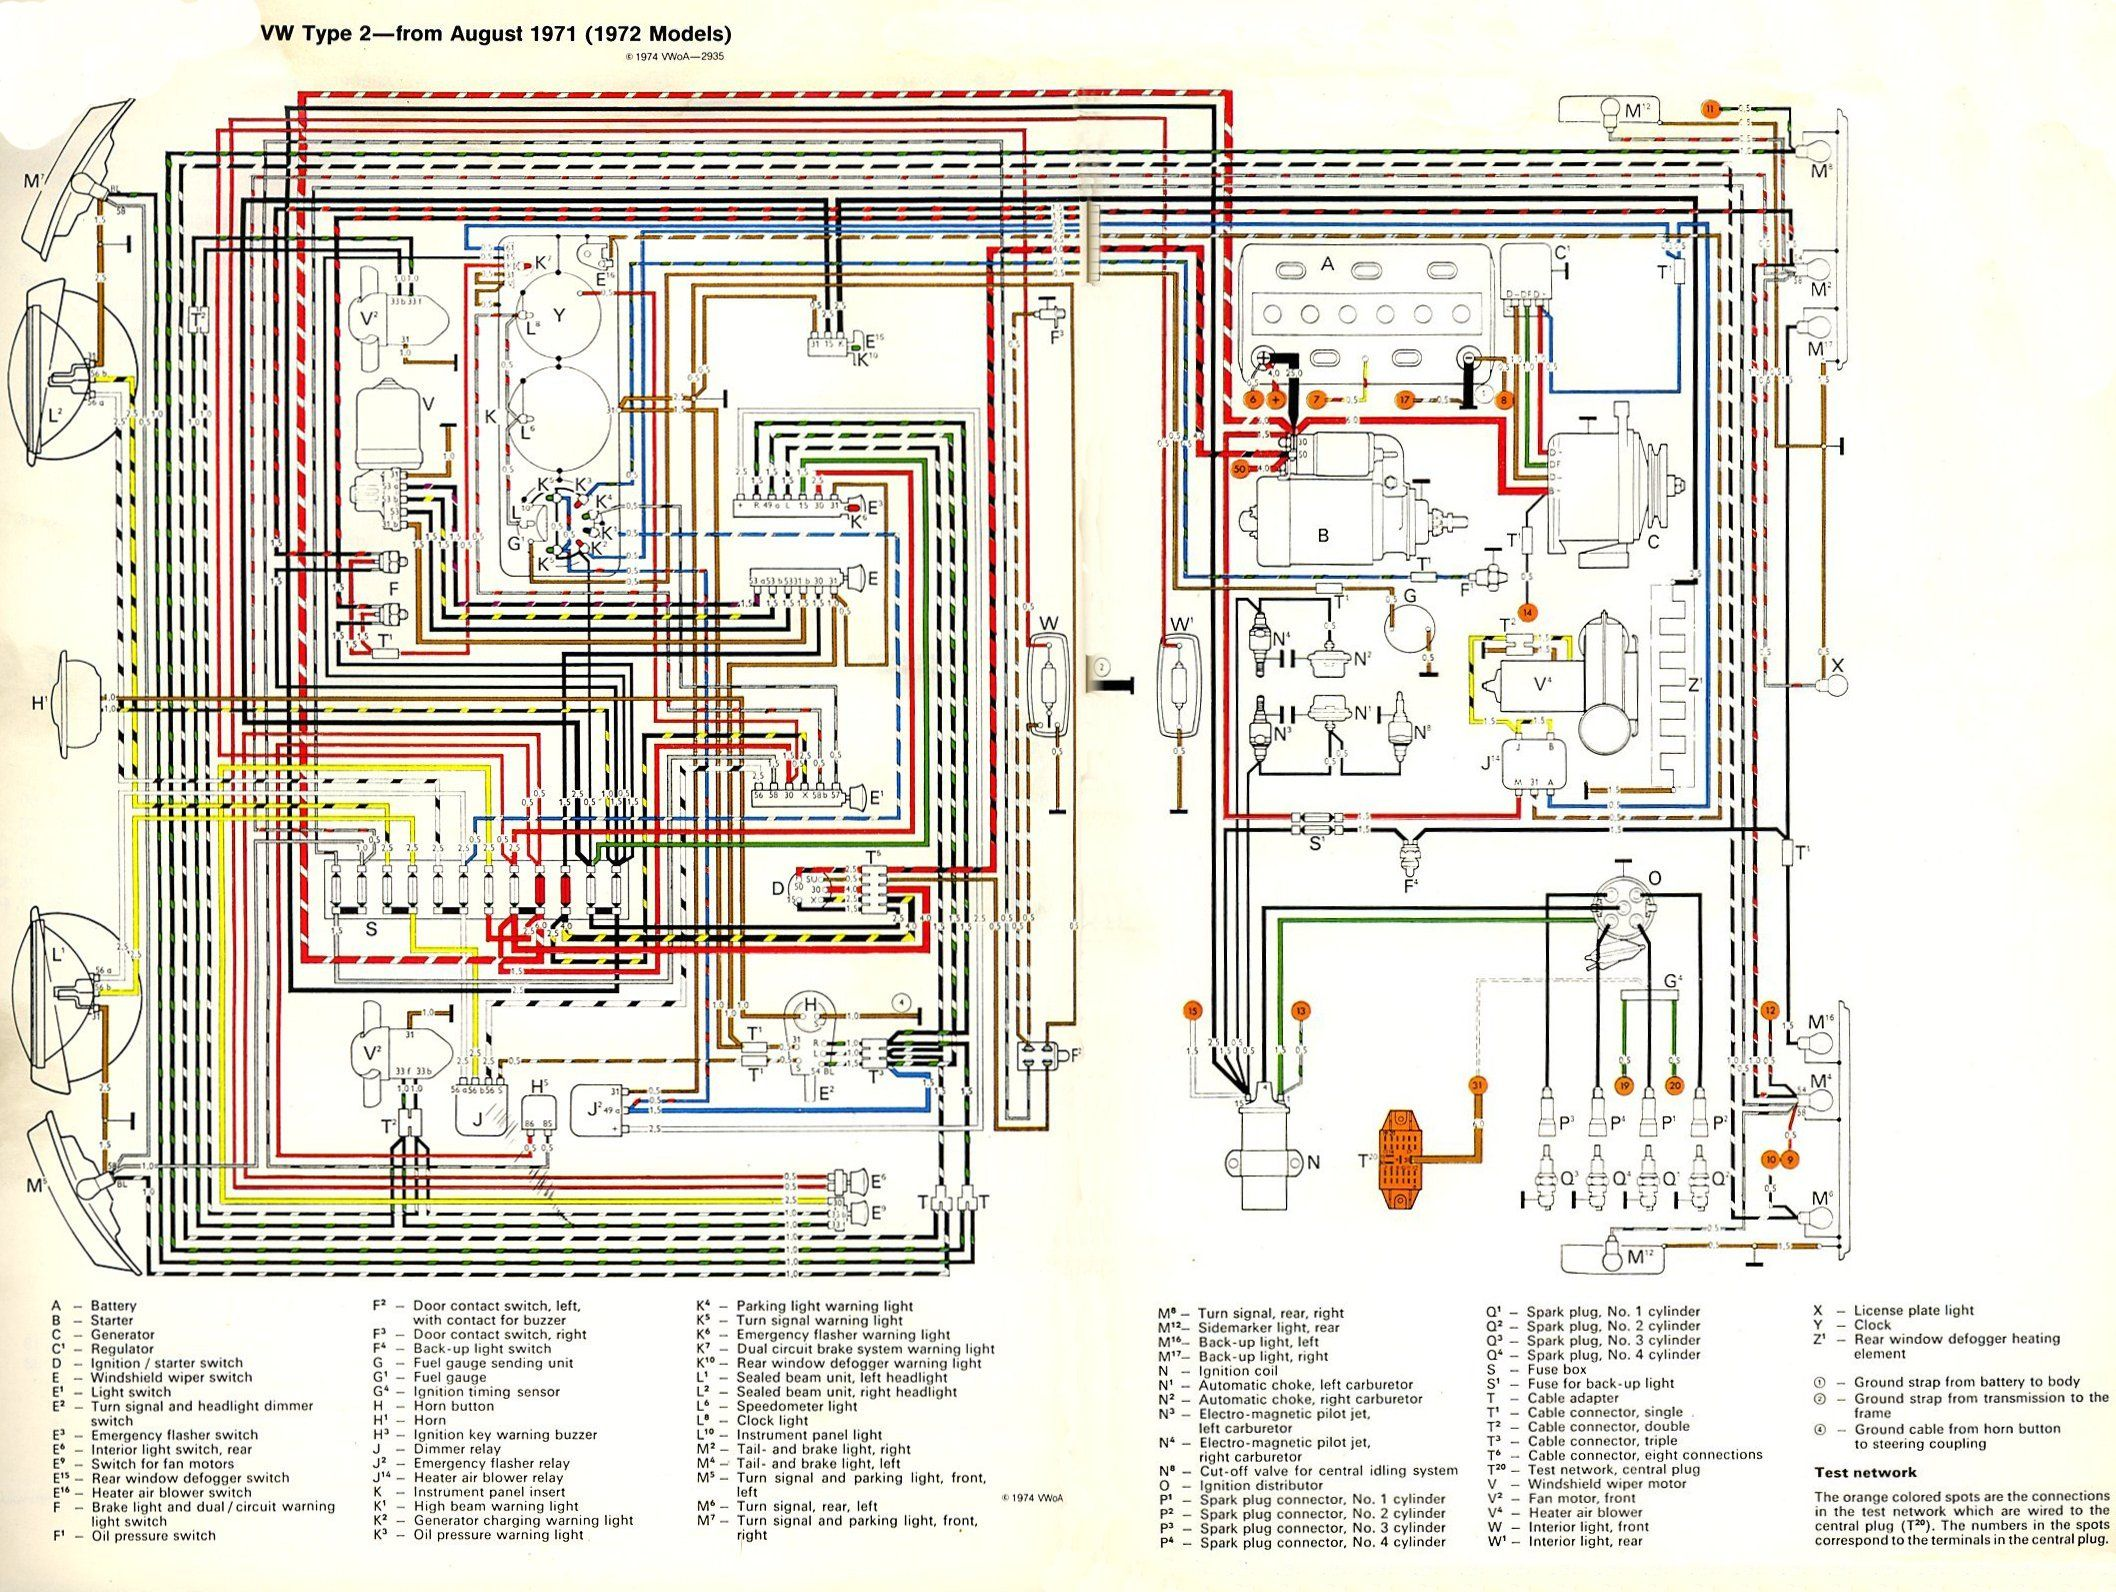 Wiring Diagram Kombi Camper – Can Bus Wiring Diagram